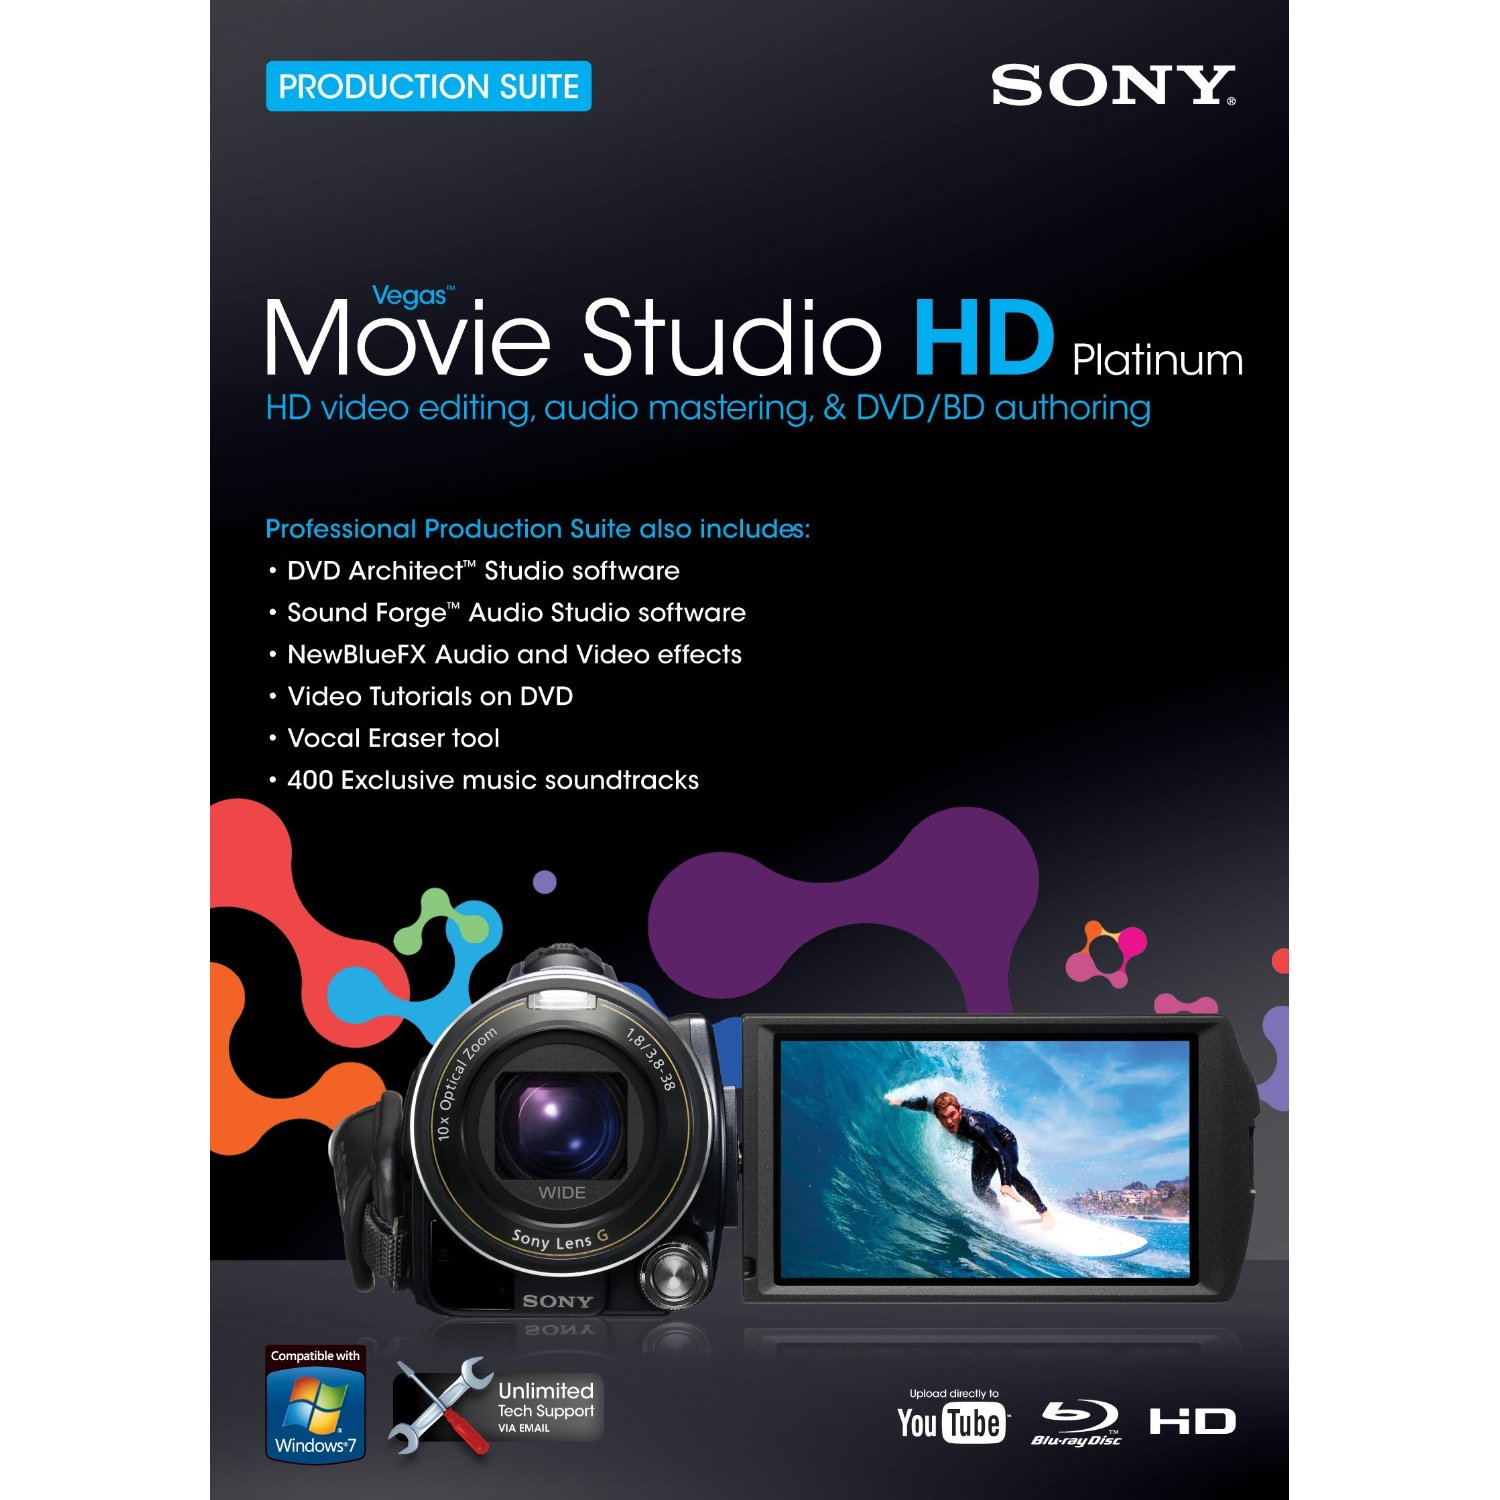 Sony vegas movie studio hd platinum 10.0.179 keygen3264 bits